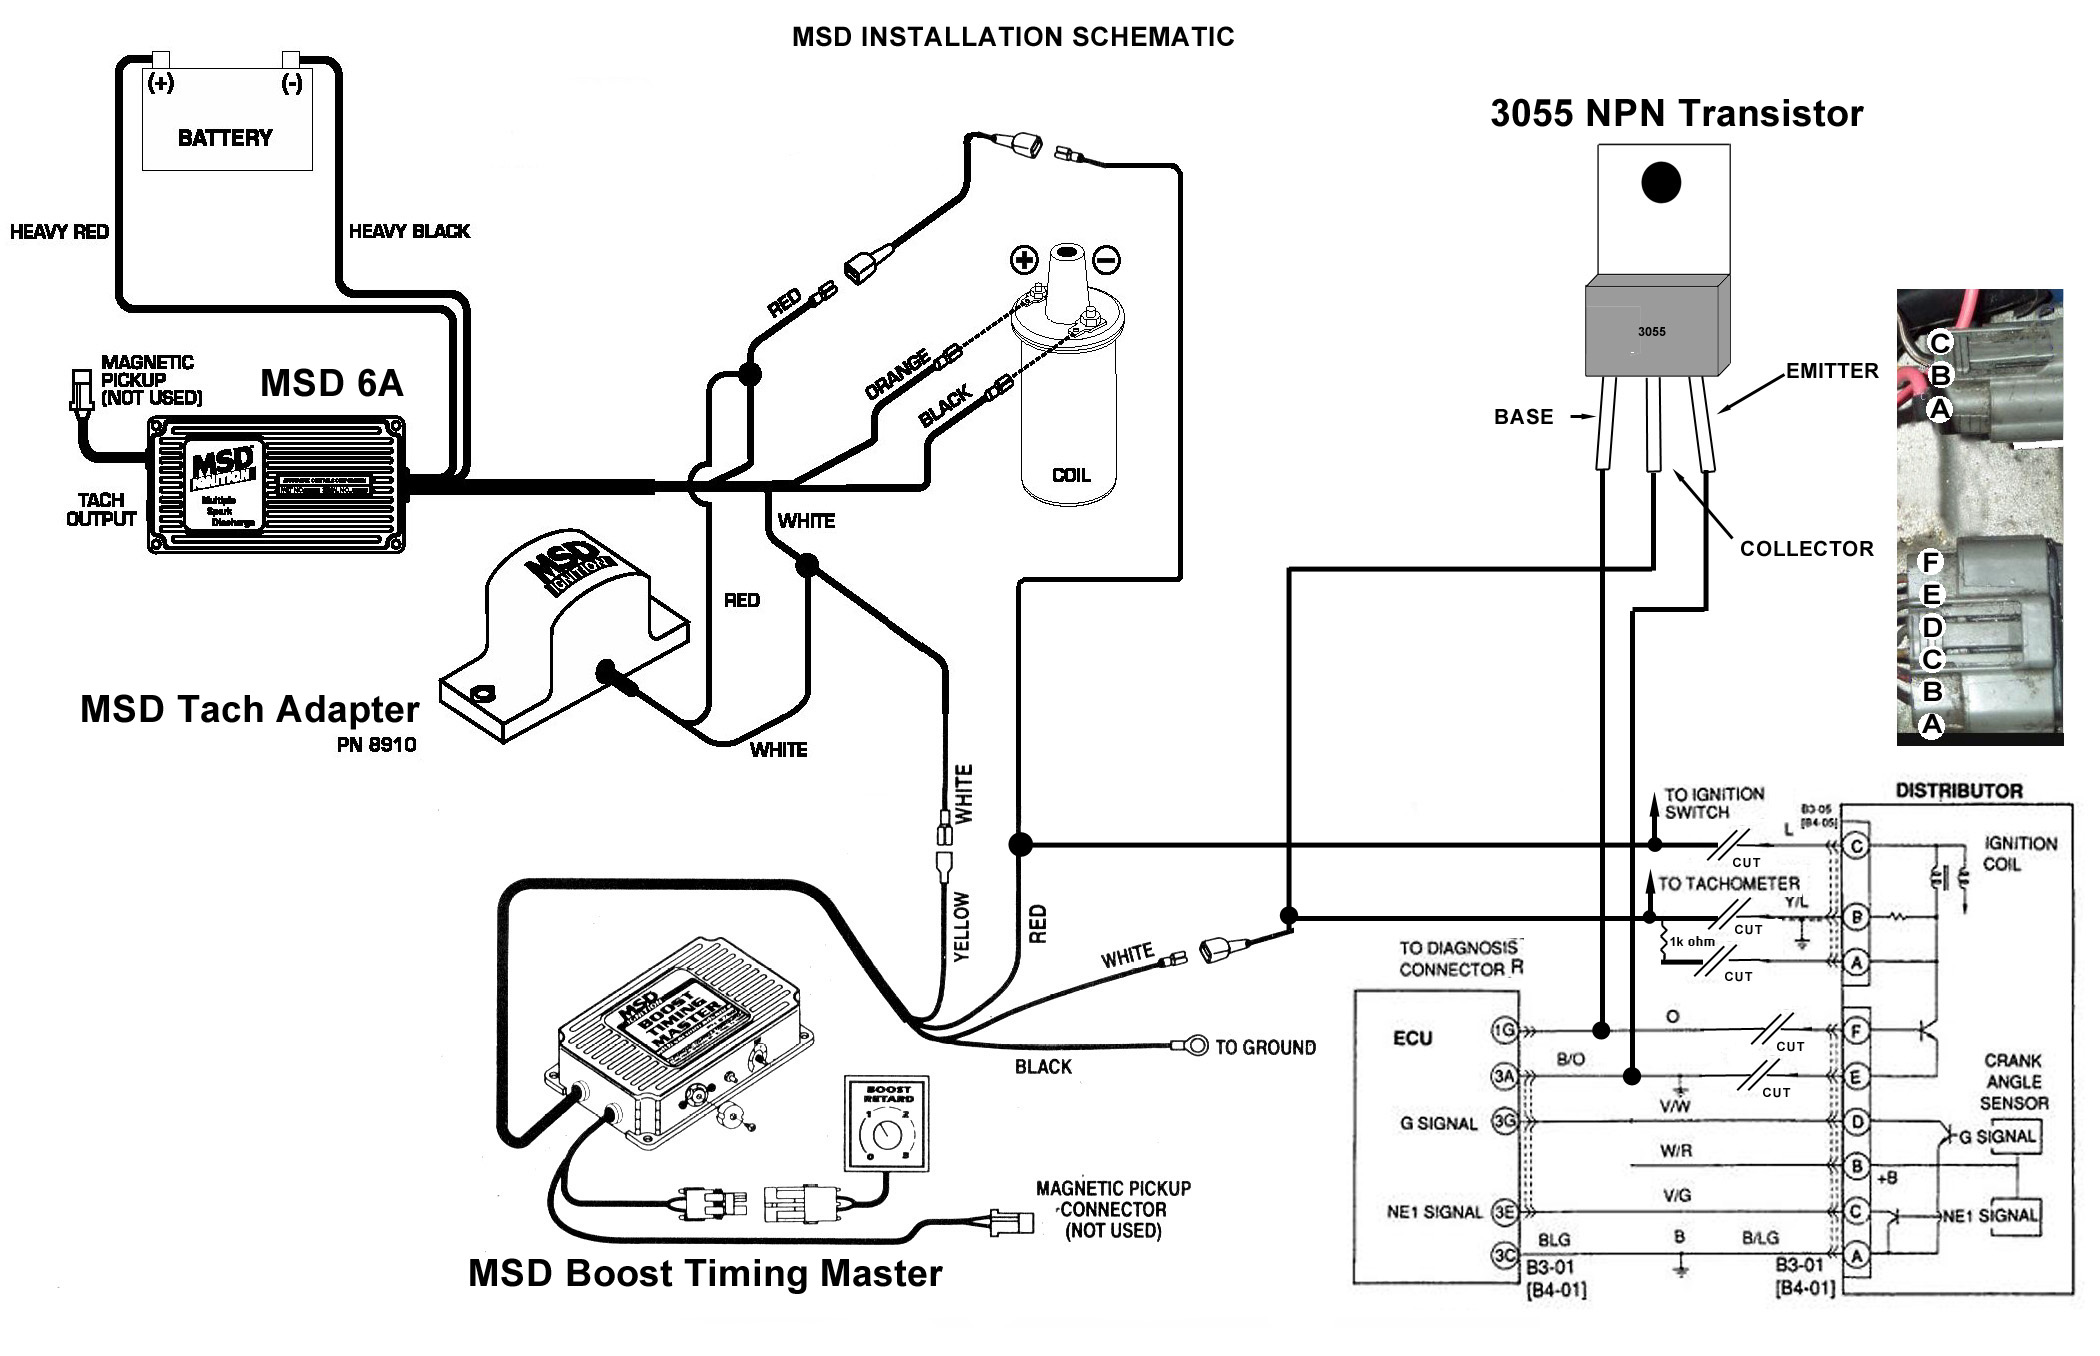 msd_complete can we use the msd boost timing master for our car? mazda mx 6 forum msd boost timing master wiring diagram at alyssarenee.co